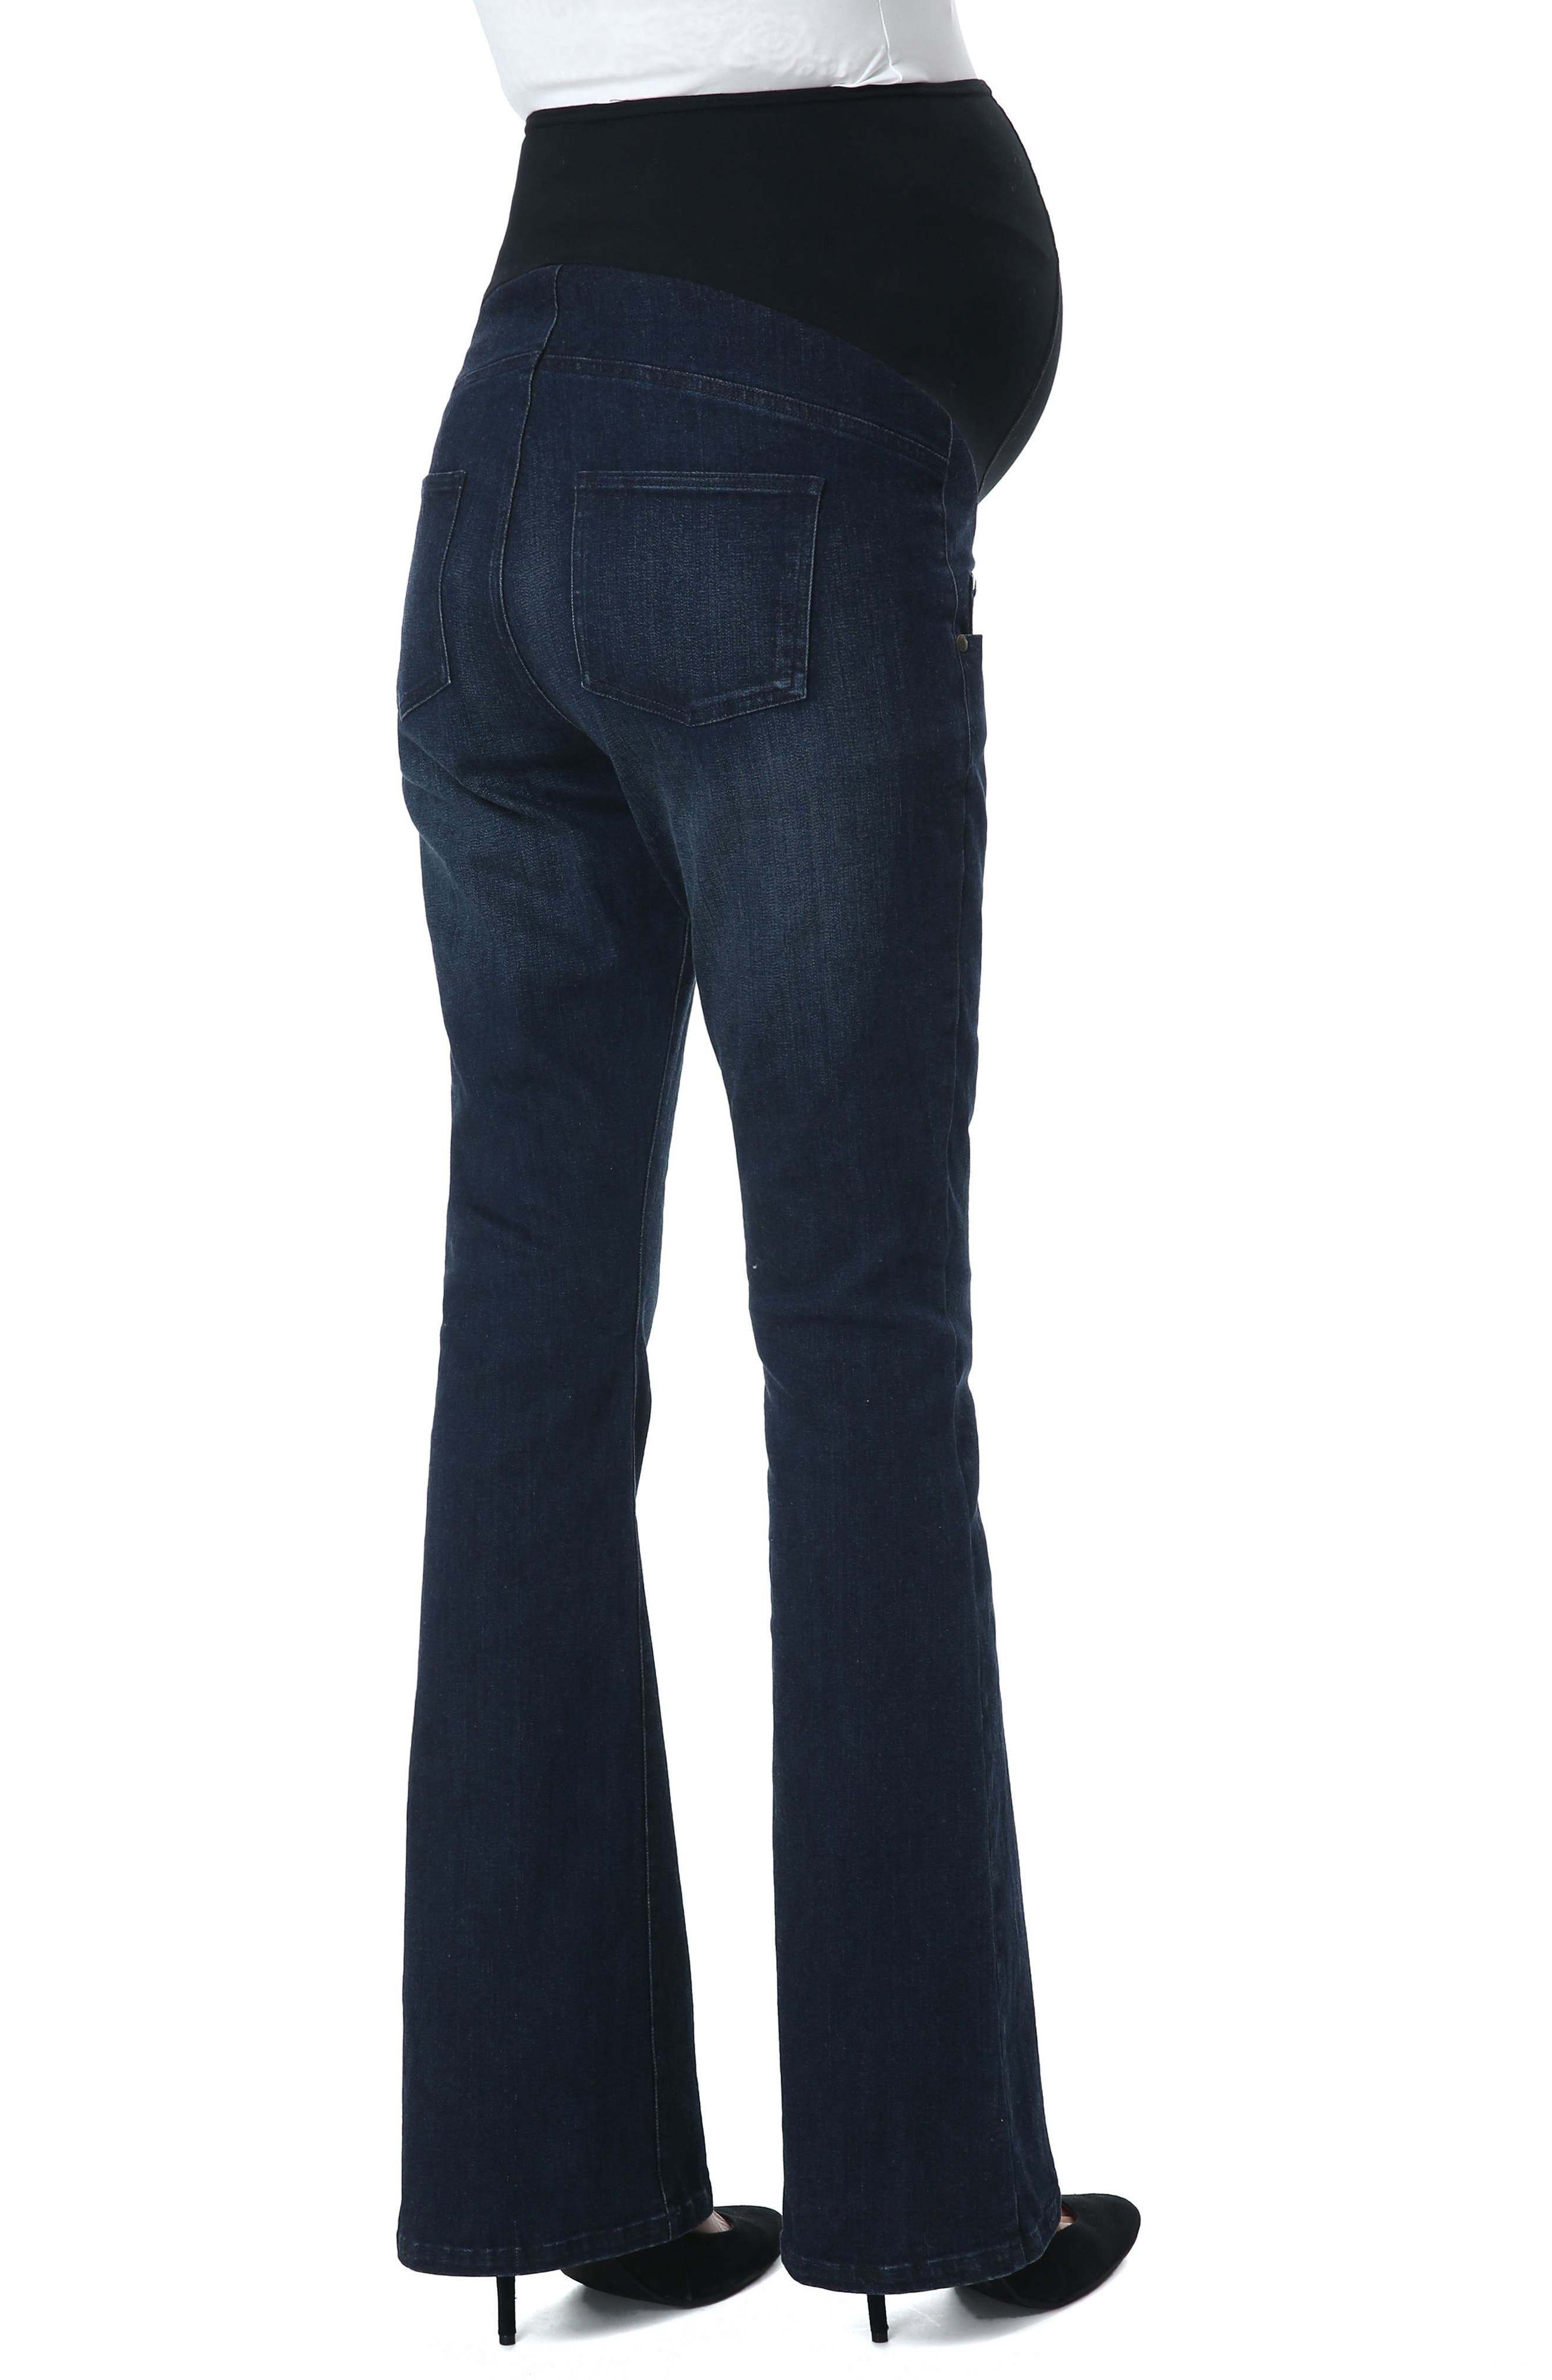 Leni Maternity Bootcut Jeans,                             Alternate thumbnail 2, color,                             010